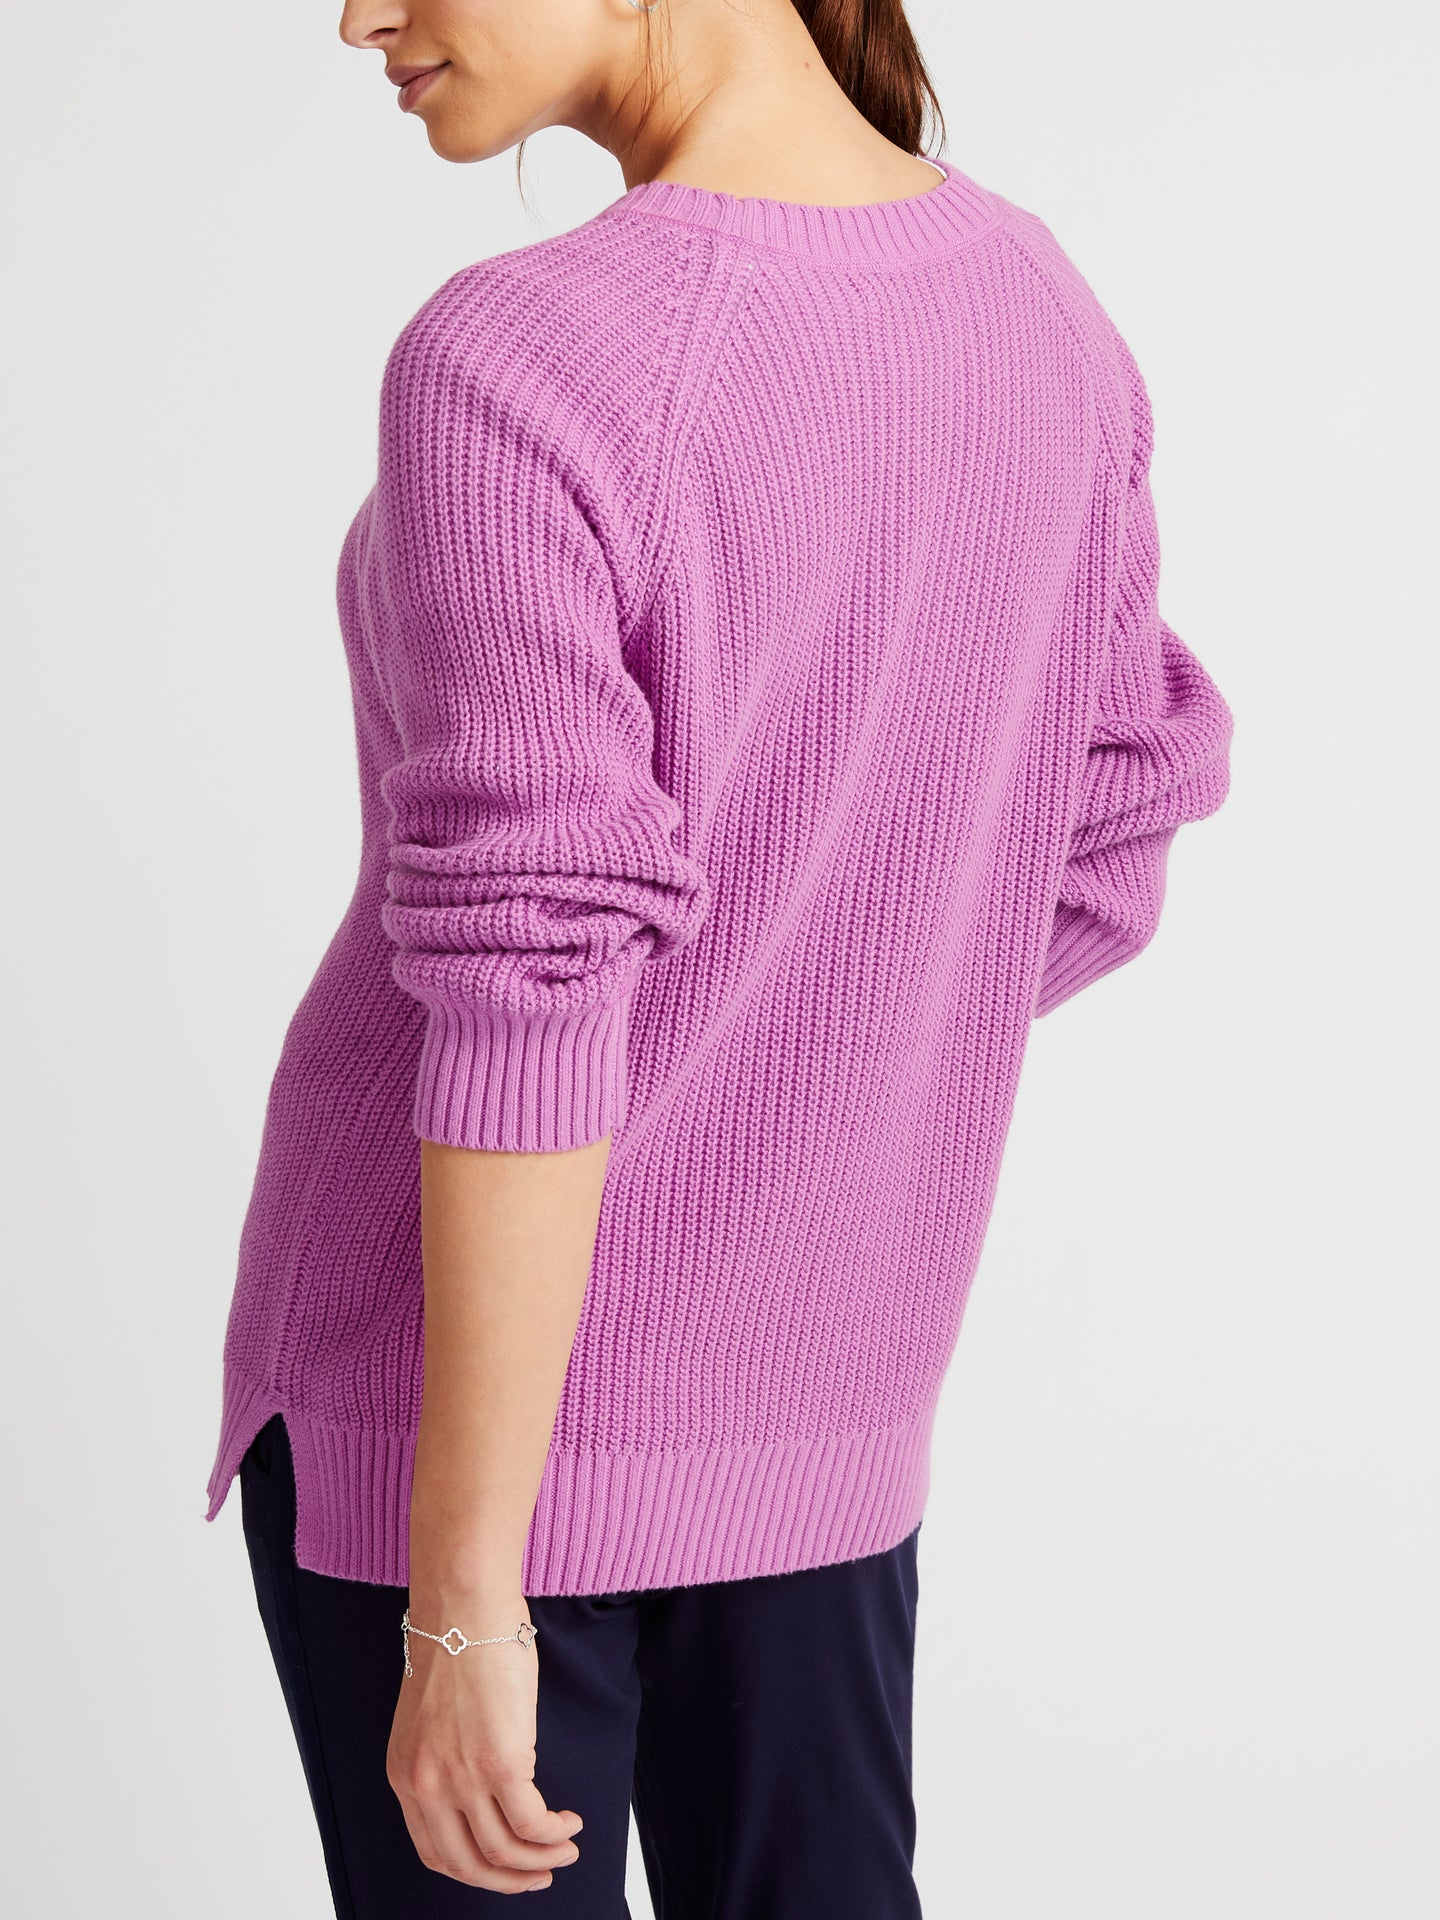 Annie cotton crew neck sweater purple